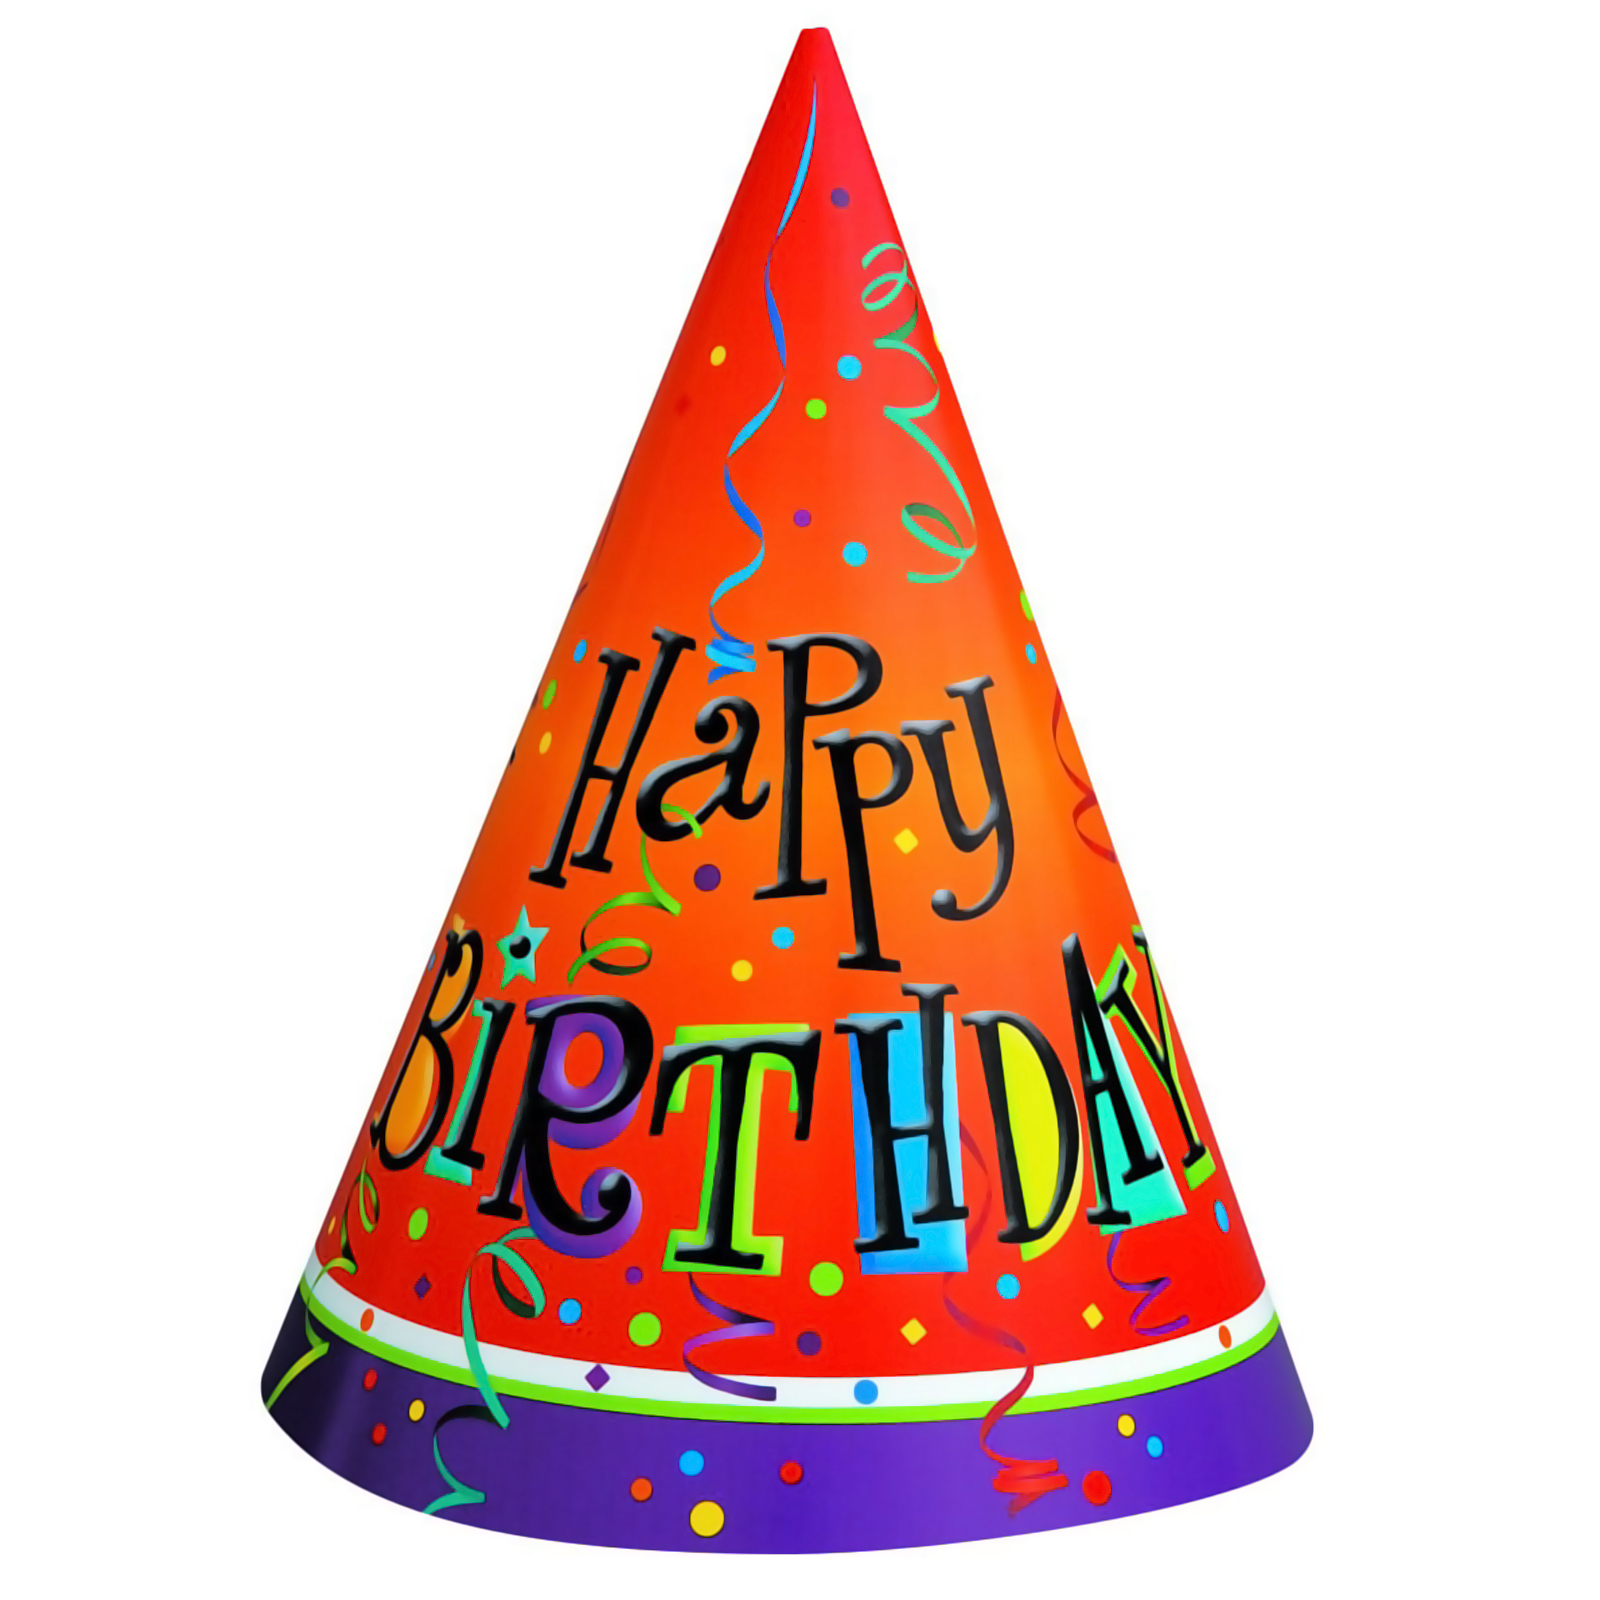 birthday hat clipart ; 8iA6pKxBT